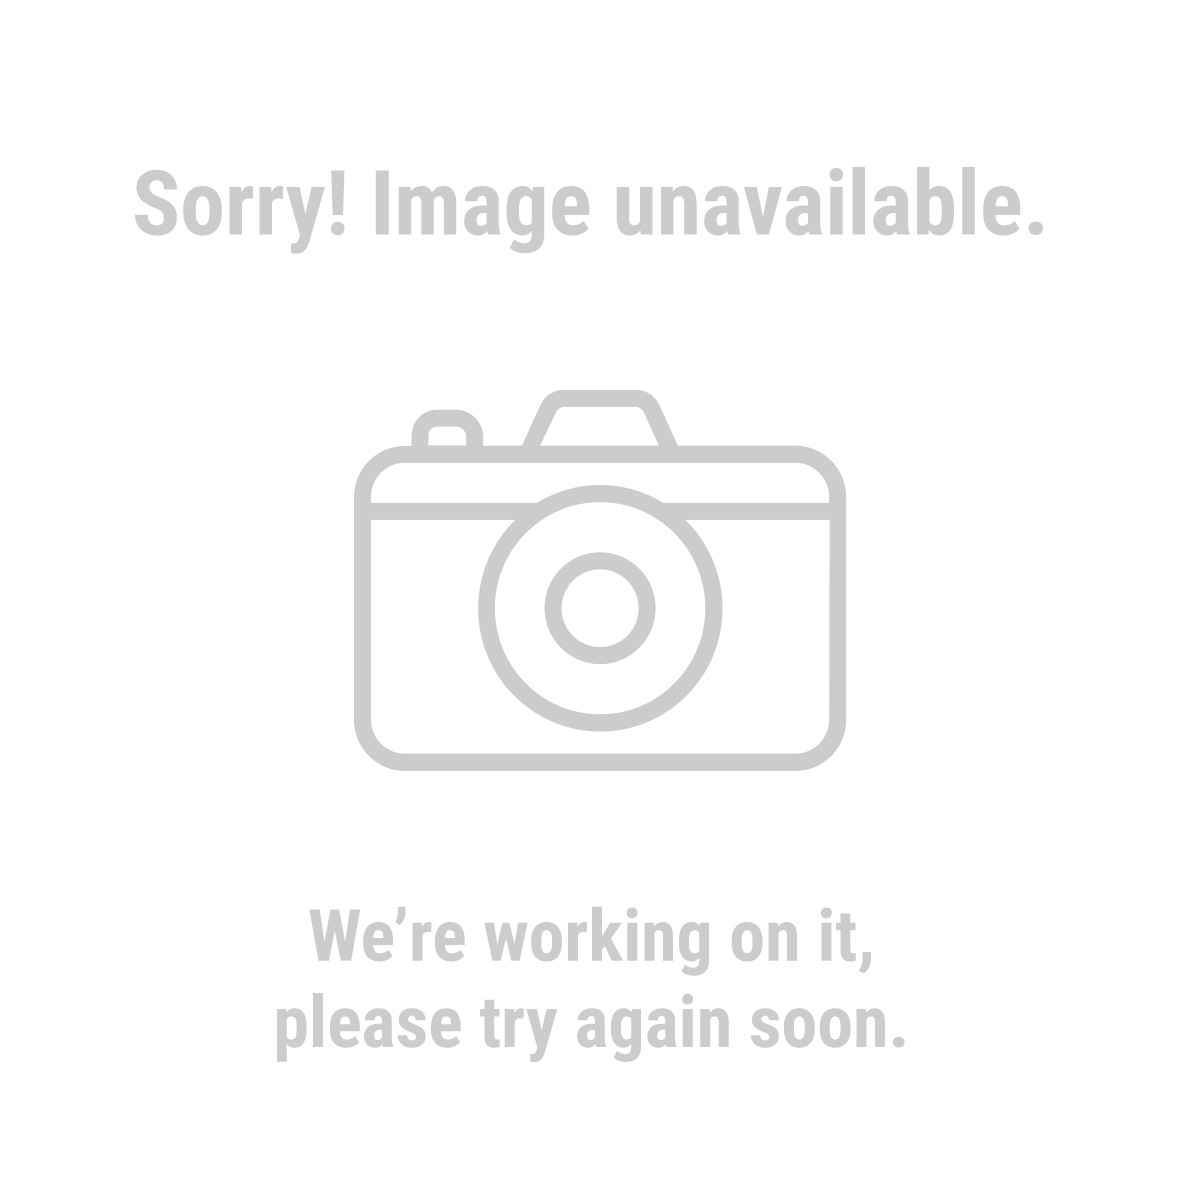 Bunker Hill Security 45891 Electronic Digital Safe